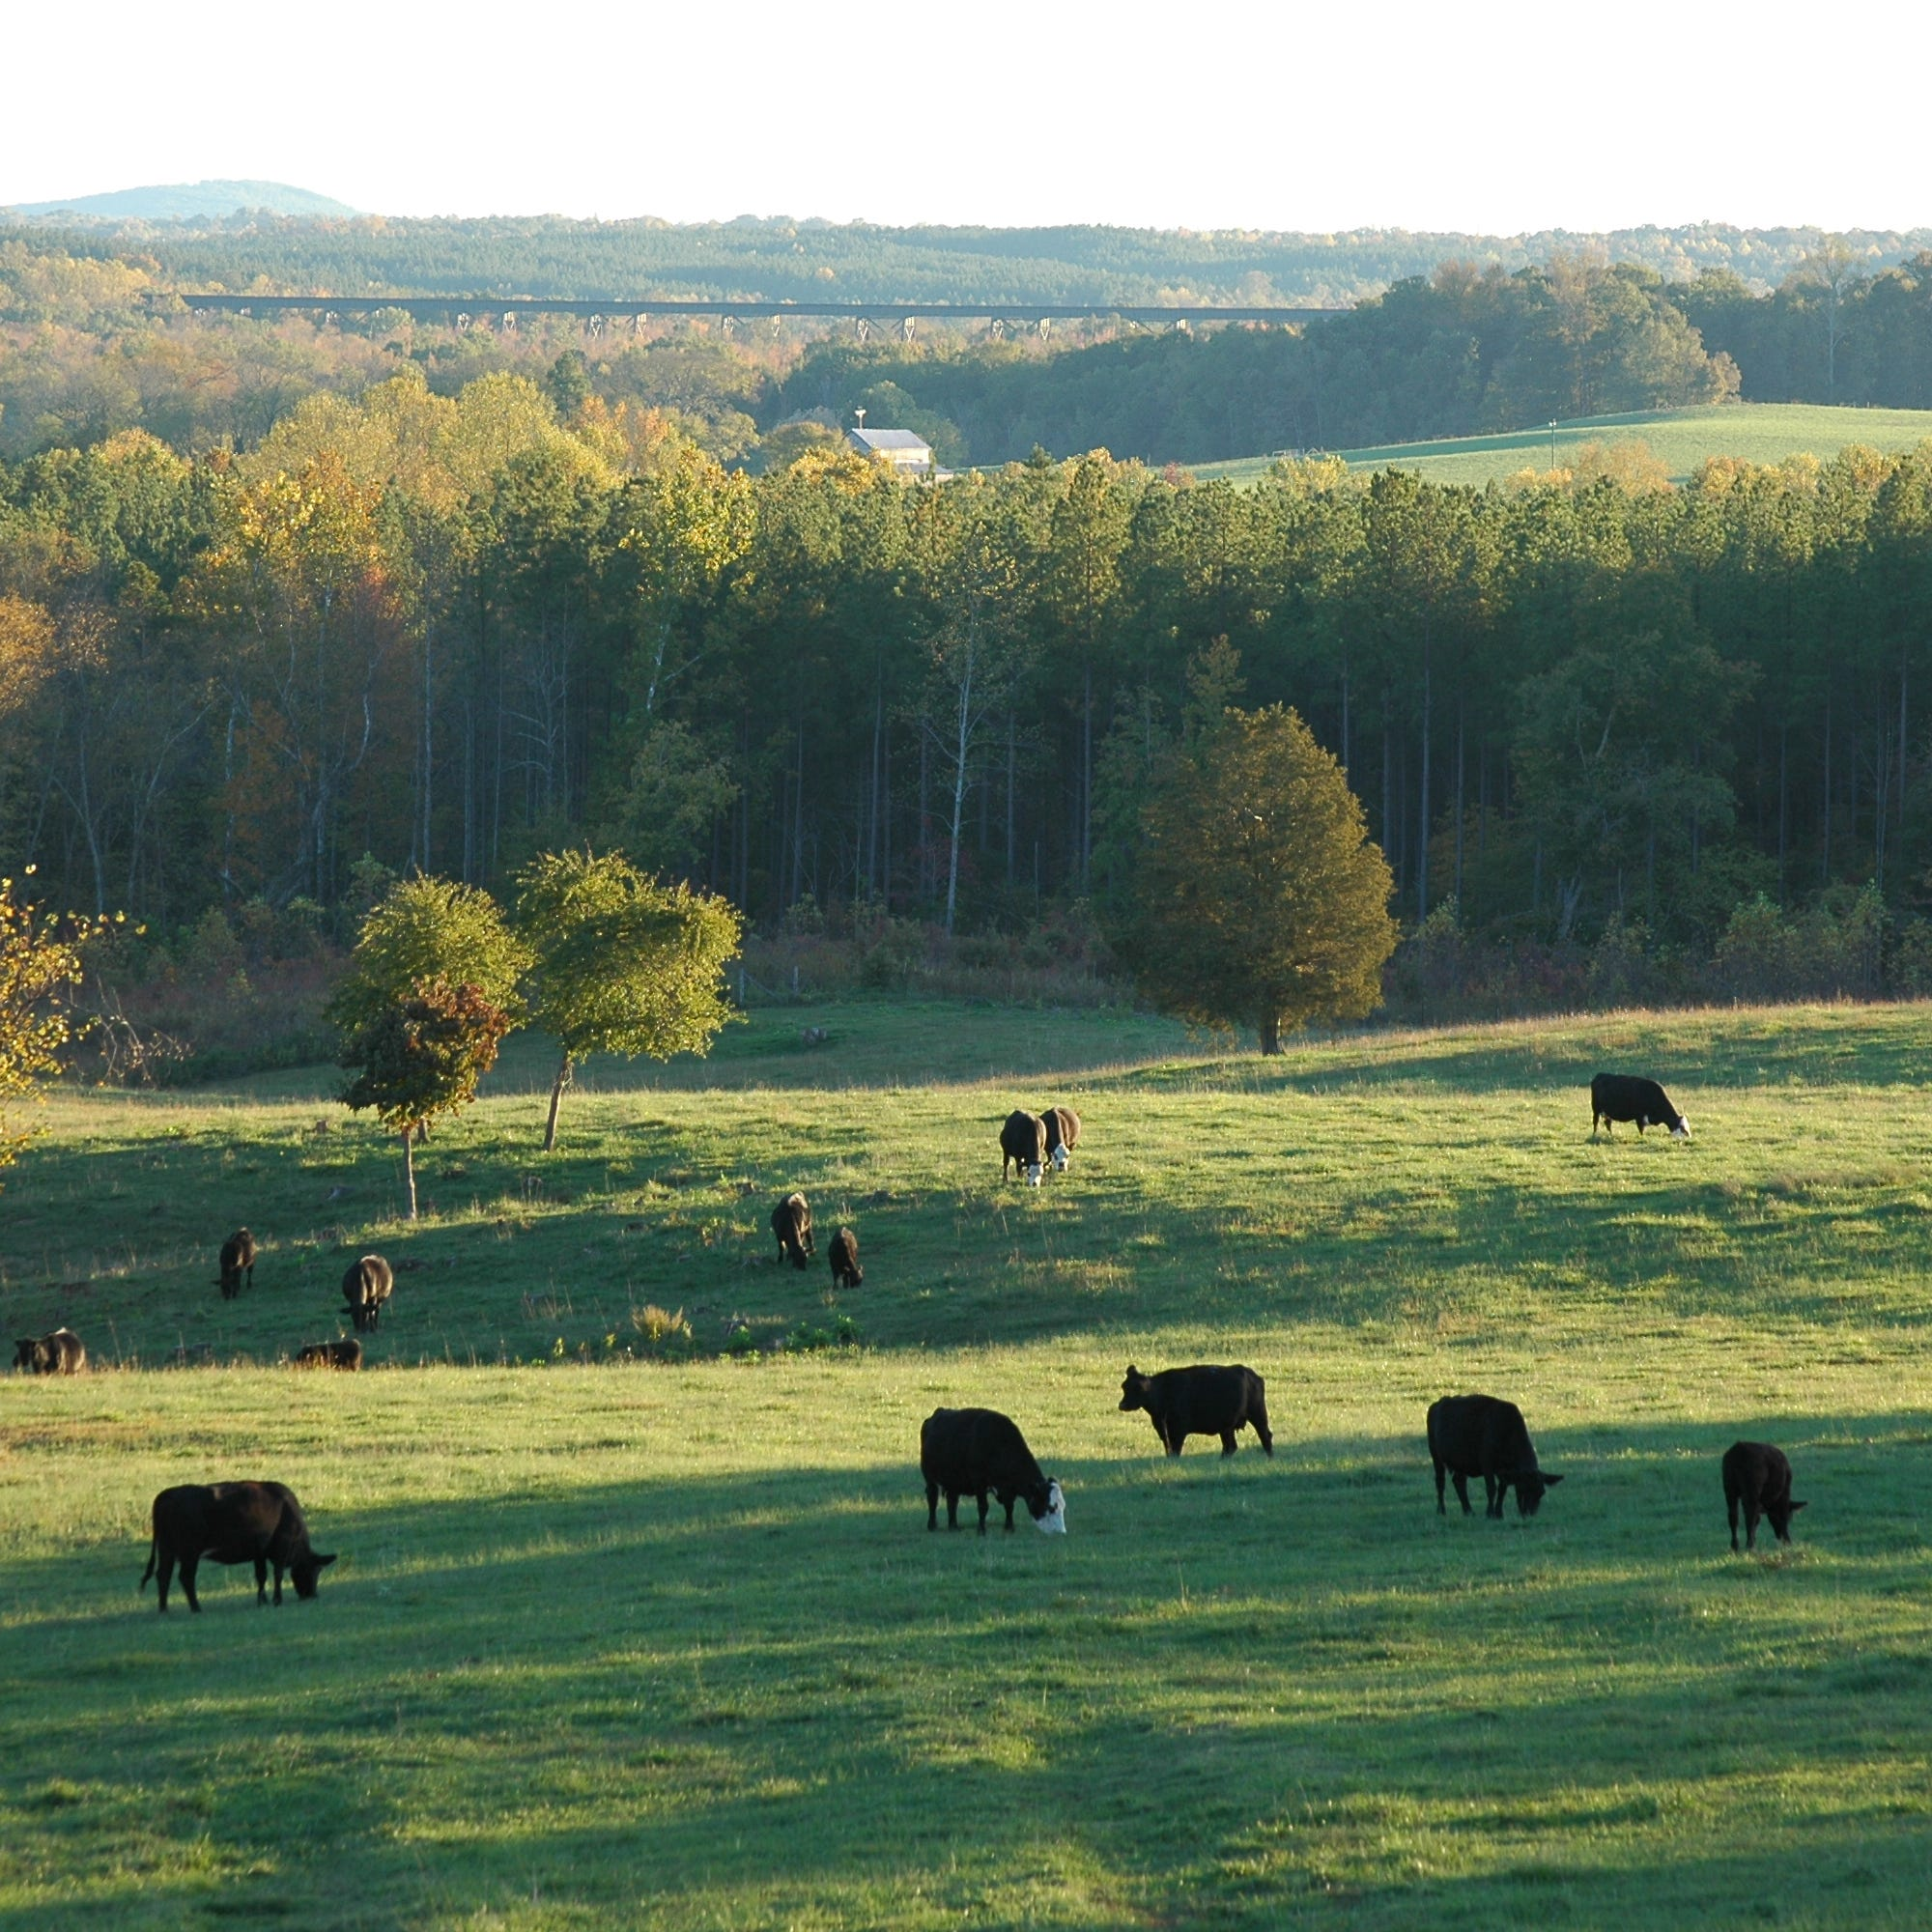 Chesapeake Bay: To keep it clean, manure matters